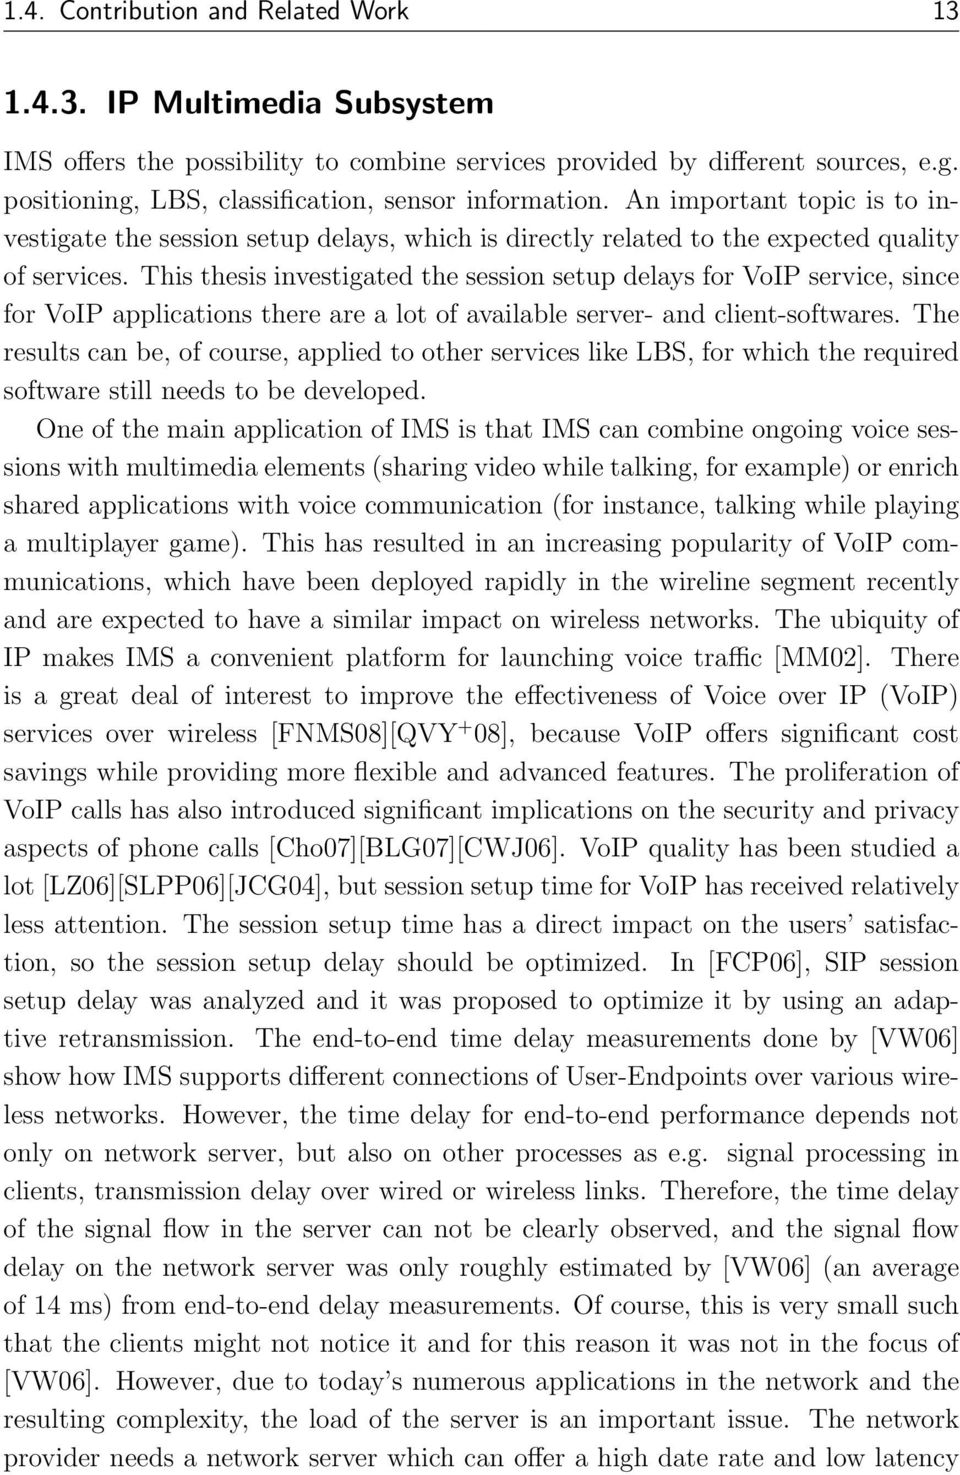 This thesis investigated the session setup delays for VoIP service, since for VoIP applications there are a lot of available server- and client-softwares.